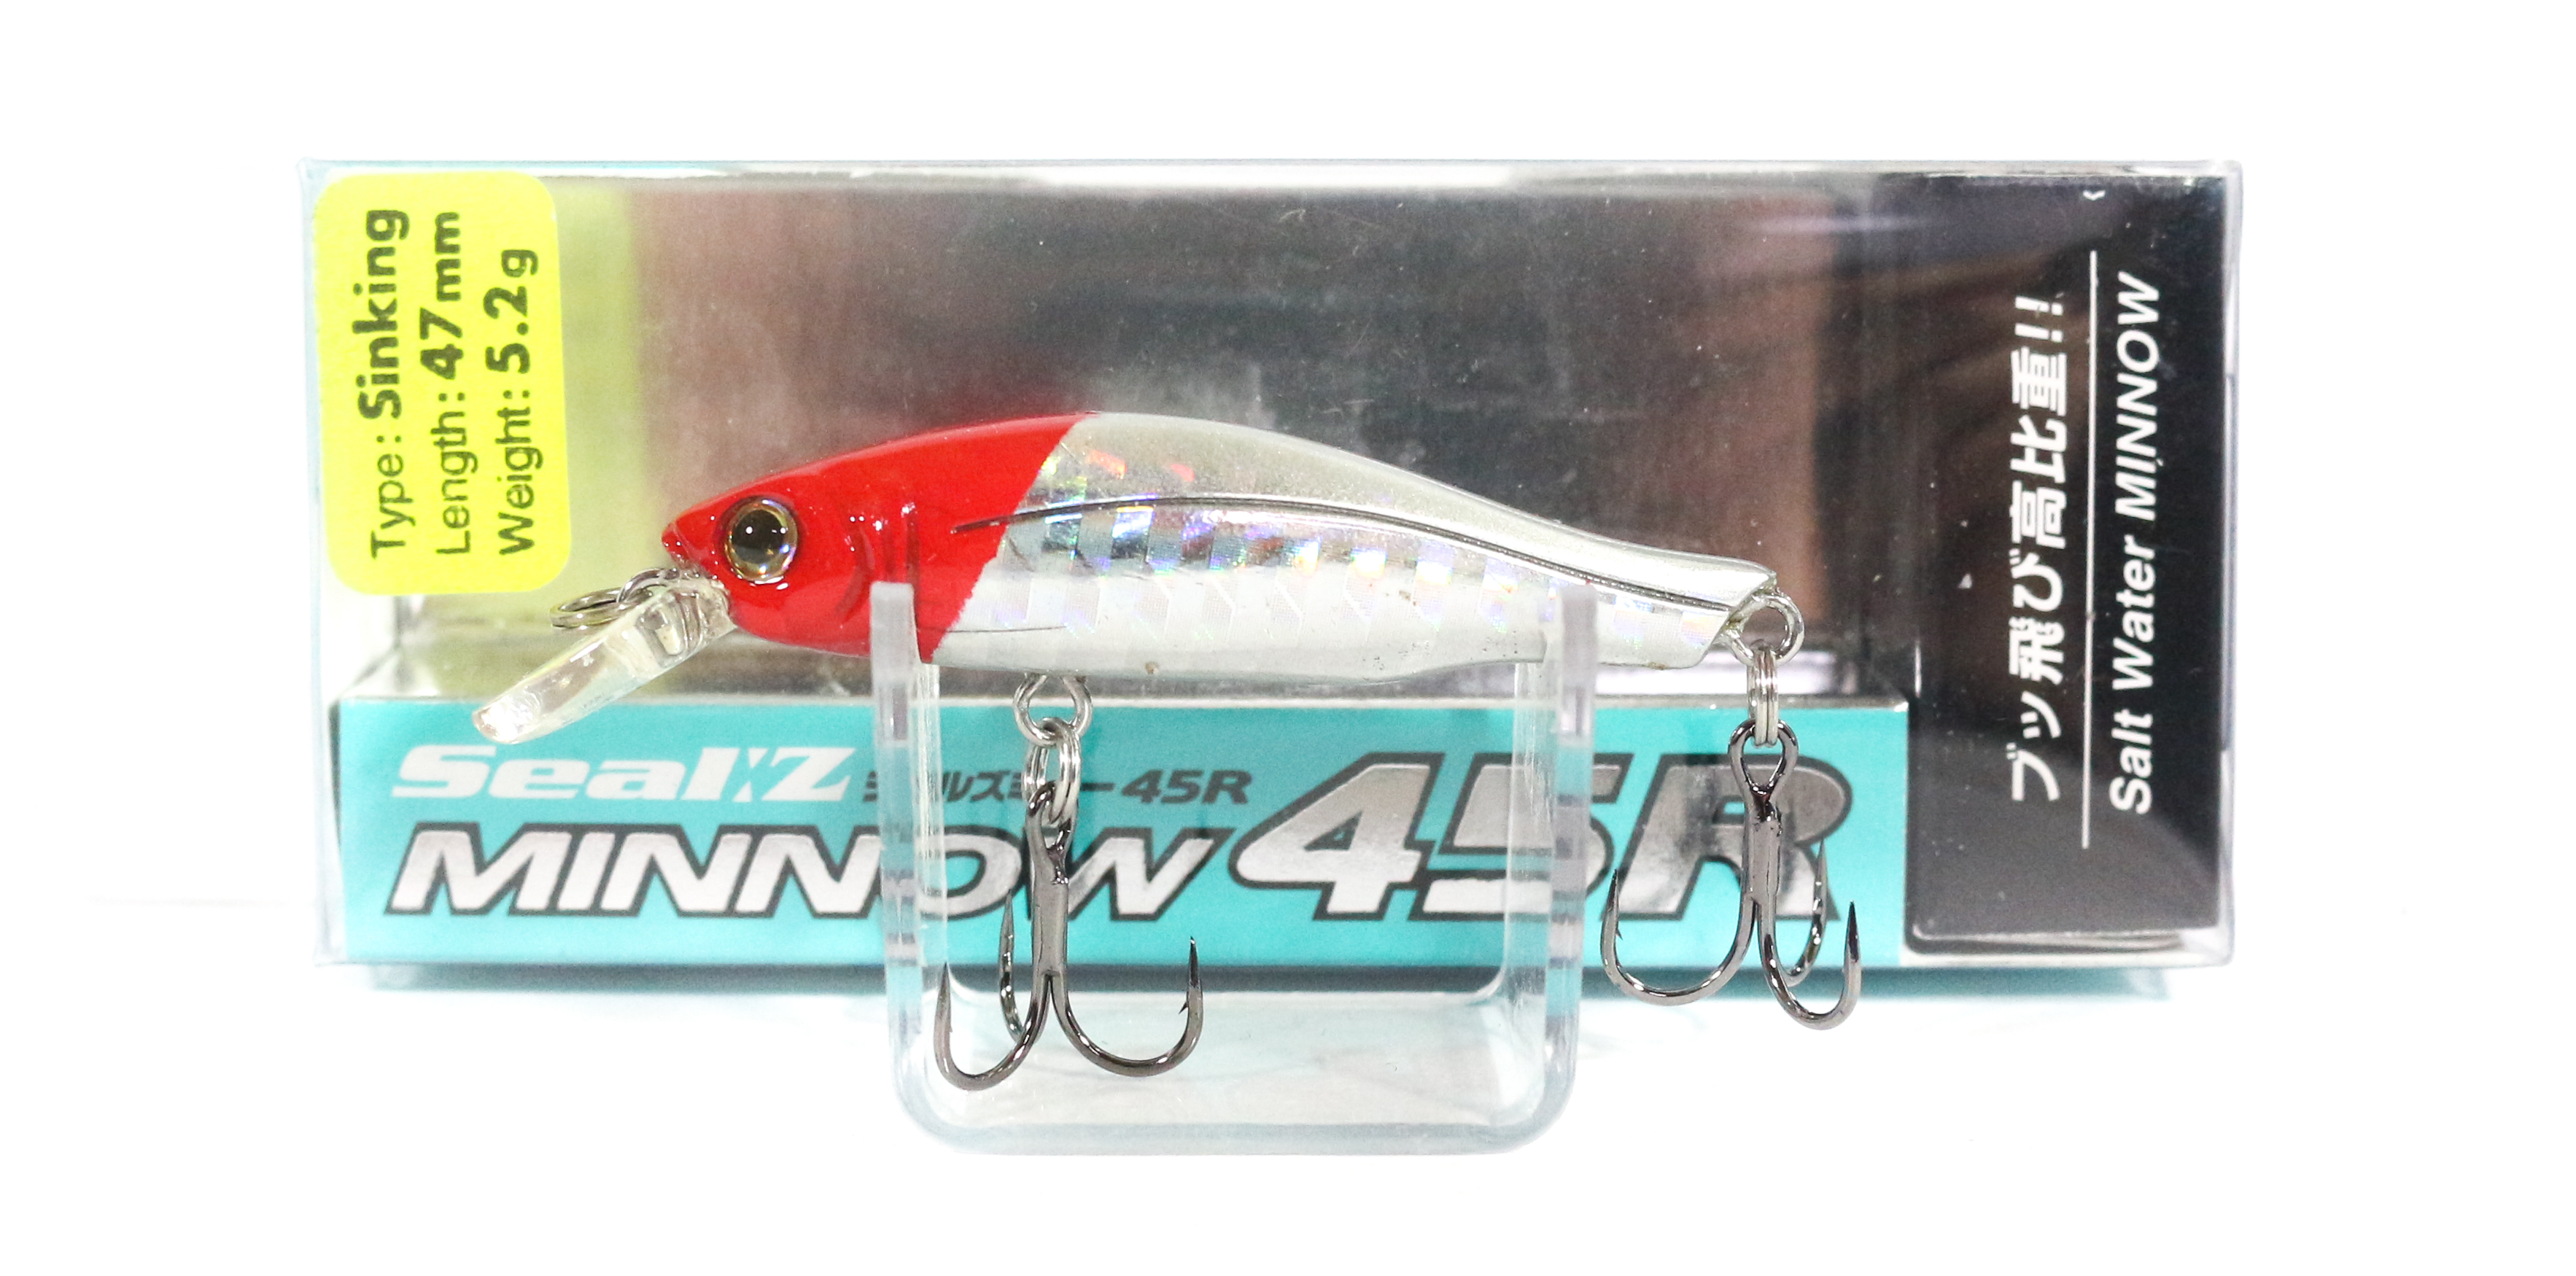 Sale Viva Aqua Wave Seal Z Minnow 45R Lure A24A (2767)